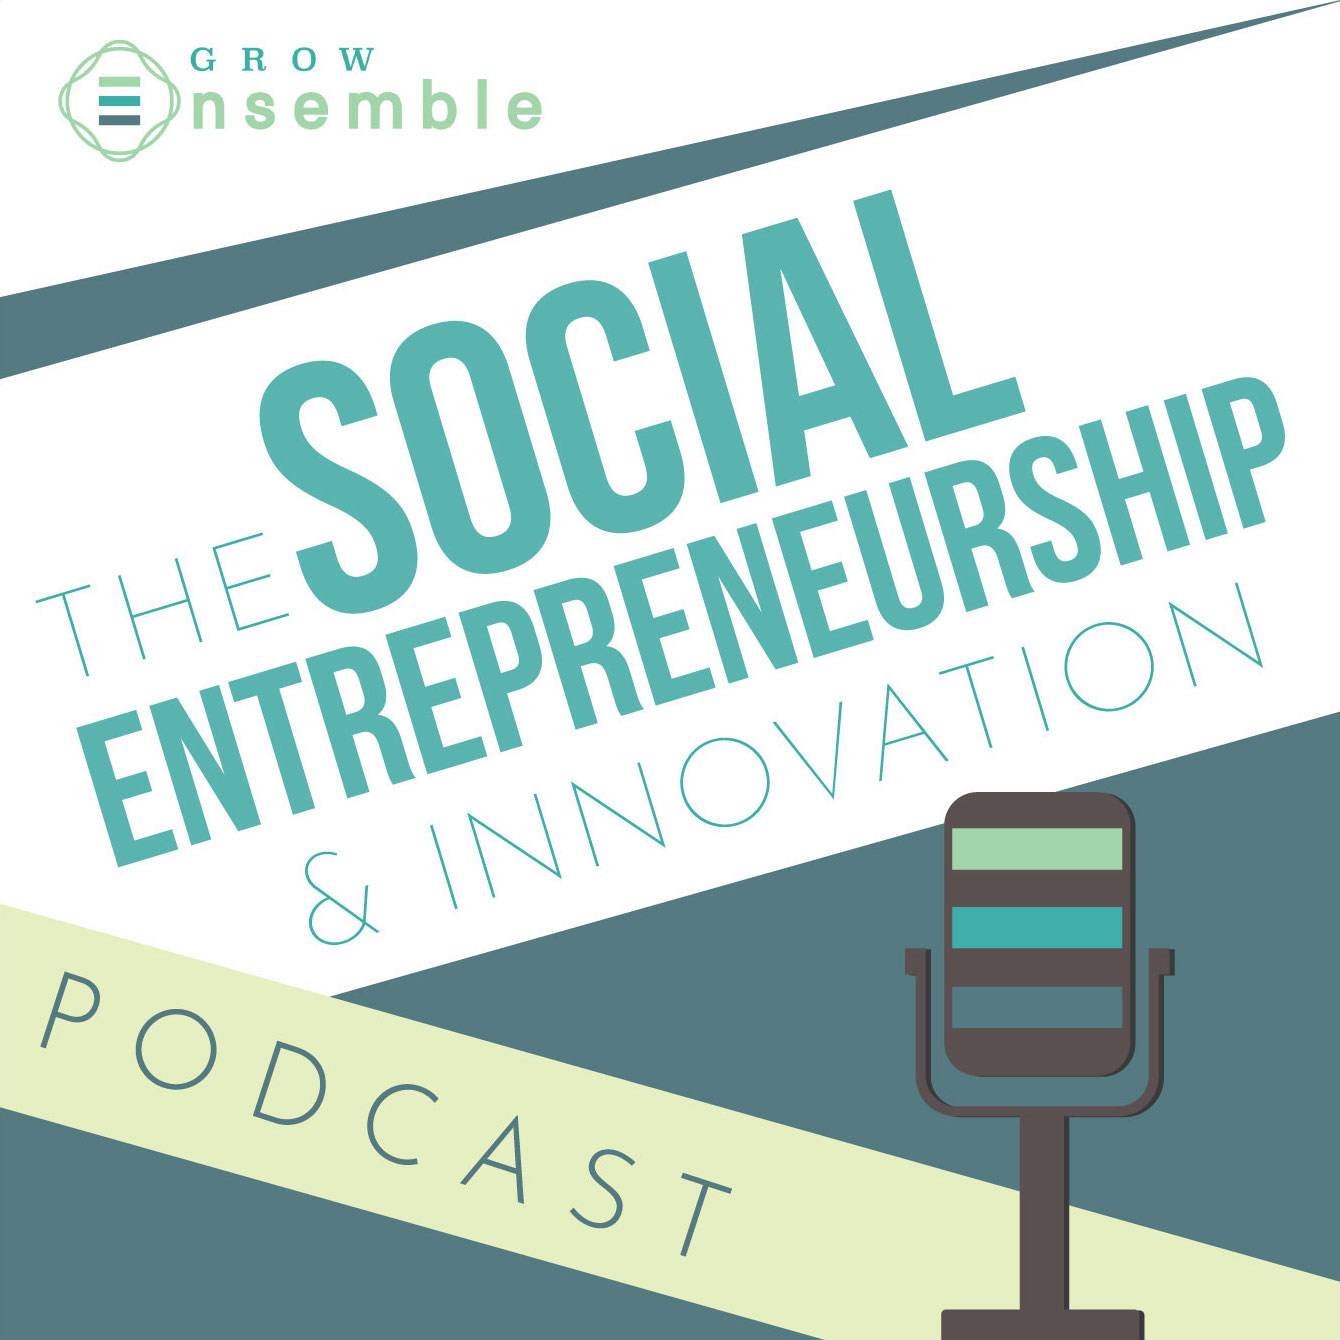 social entrepreneurship and innovation podcast cover